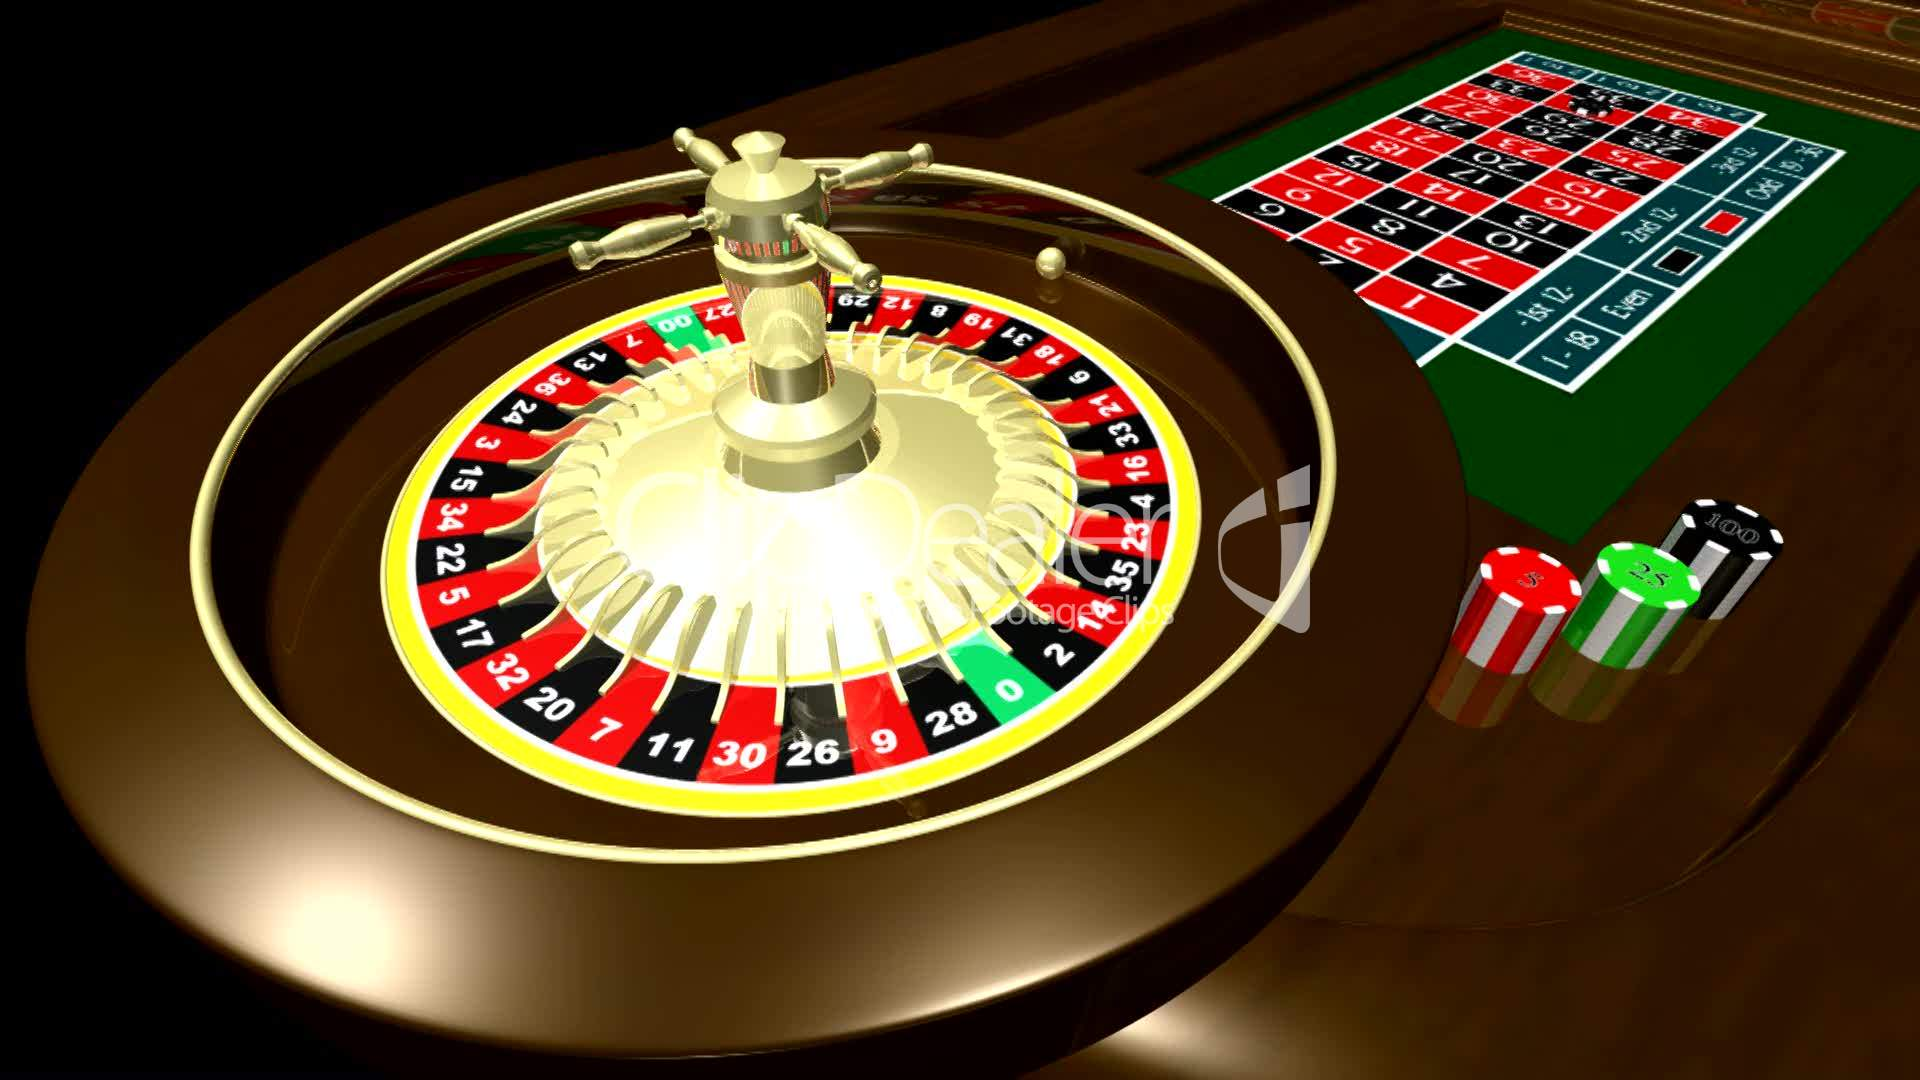 Some common risks associated with online poker gambling